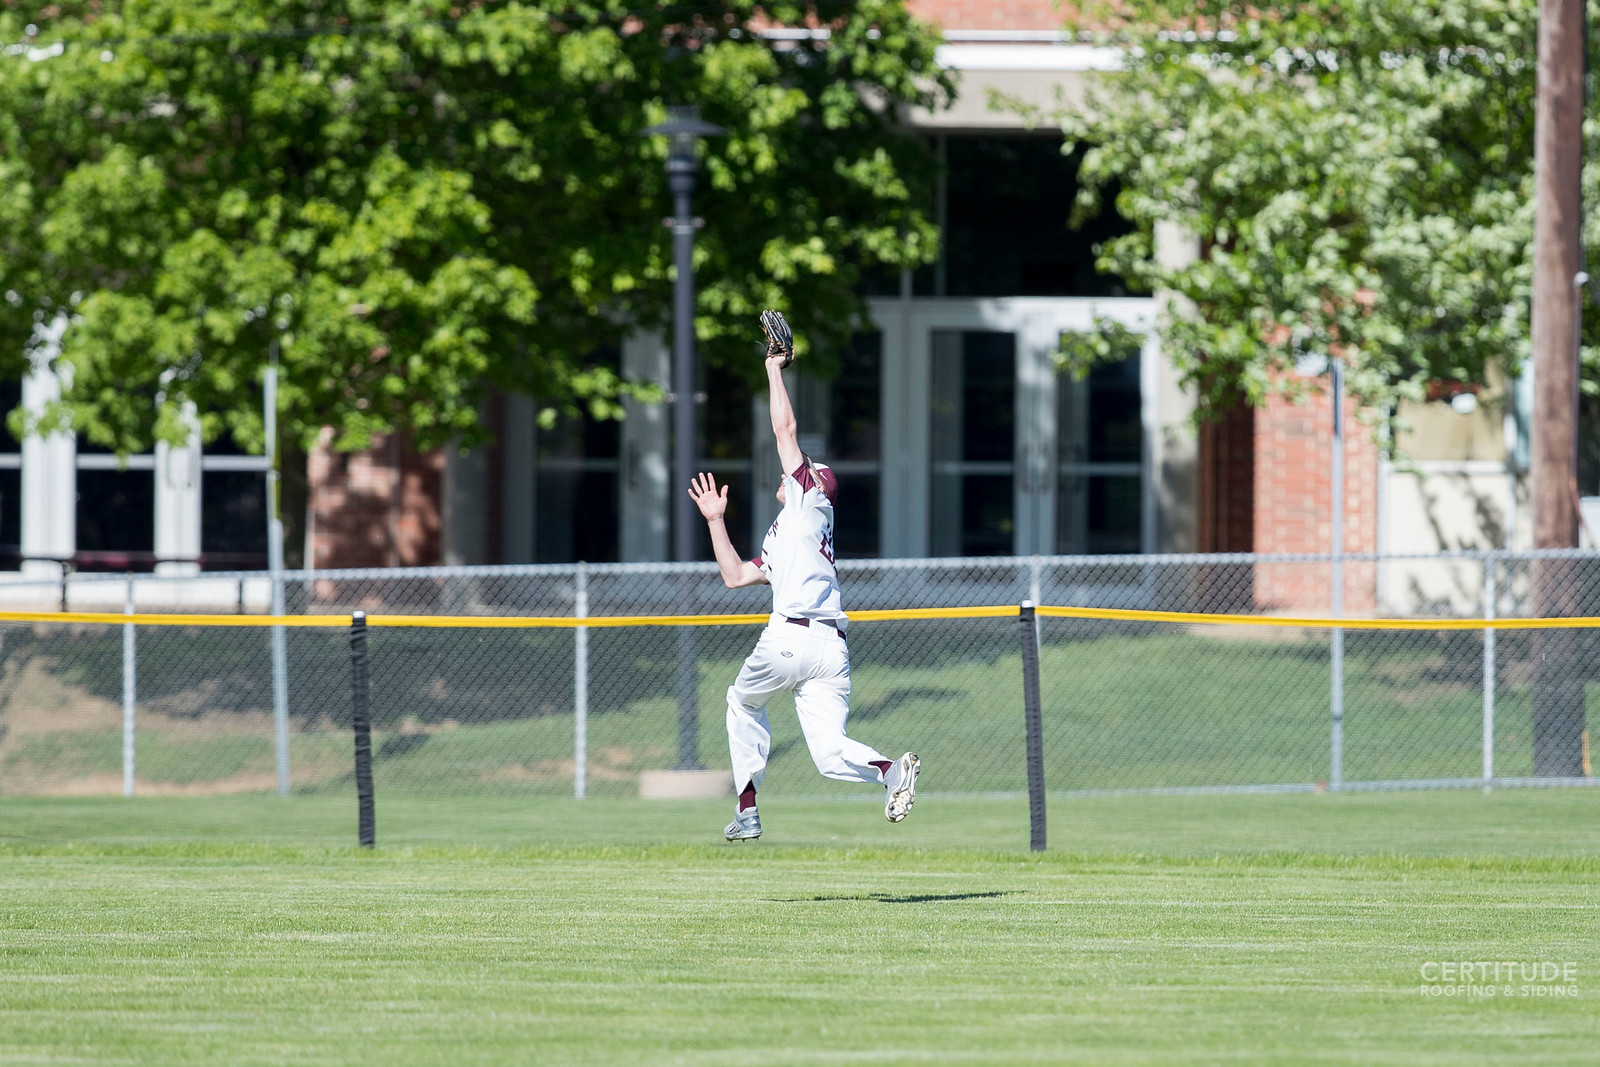 Lower_Merion_BASEBALL_vs_Conestoga-199